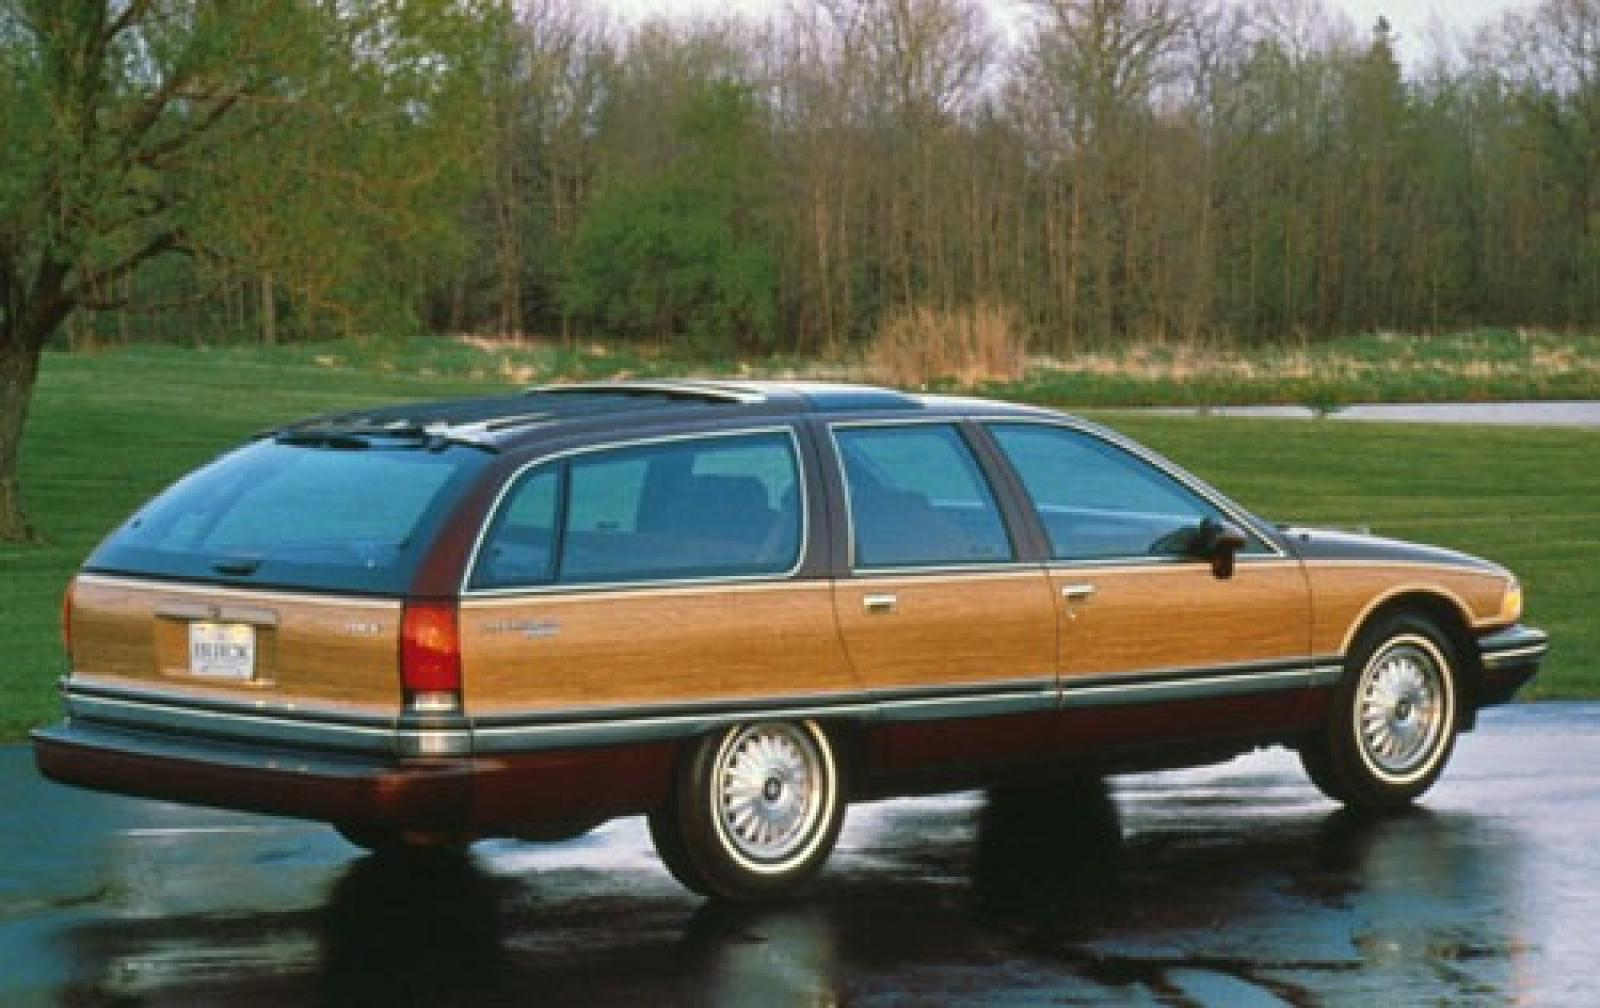 1996 buick roadmaster information and photos zombiedrive. Black Bedroom Furniture Sets. Home Design Ideas